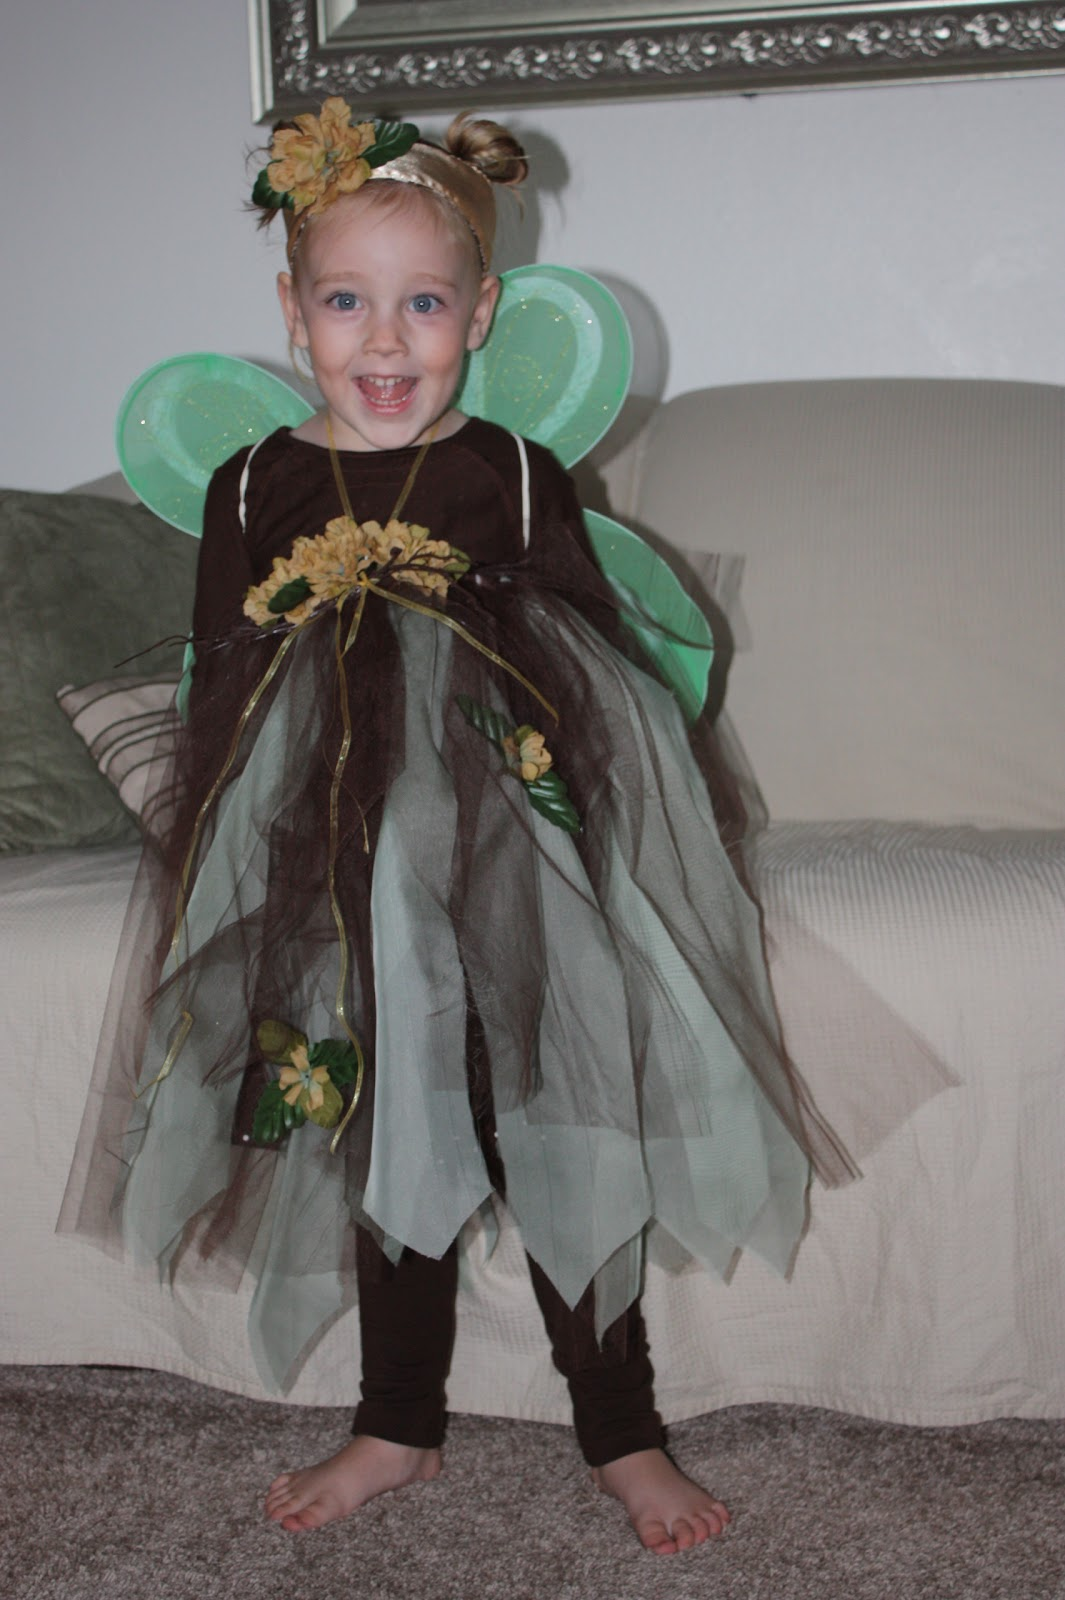 ... both of my girls were forest fairies and not only did they look sweet and precious as all little girls should look but also the costumes were super ...  sc 1 st  Everyday Art & Everyday Art: Forest Fairy Halloween Costume